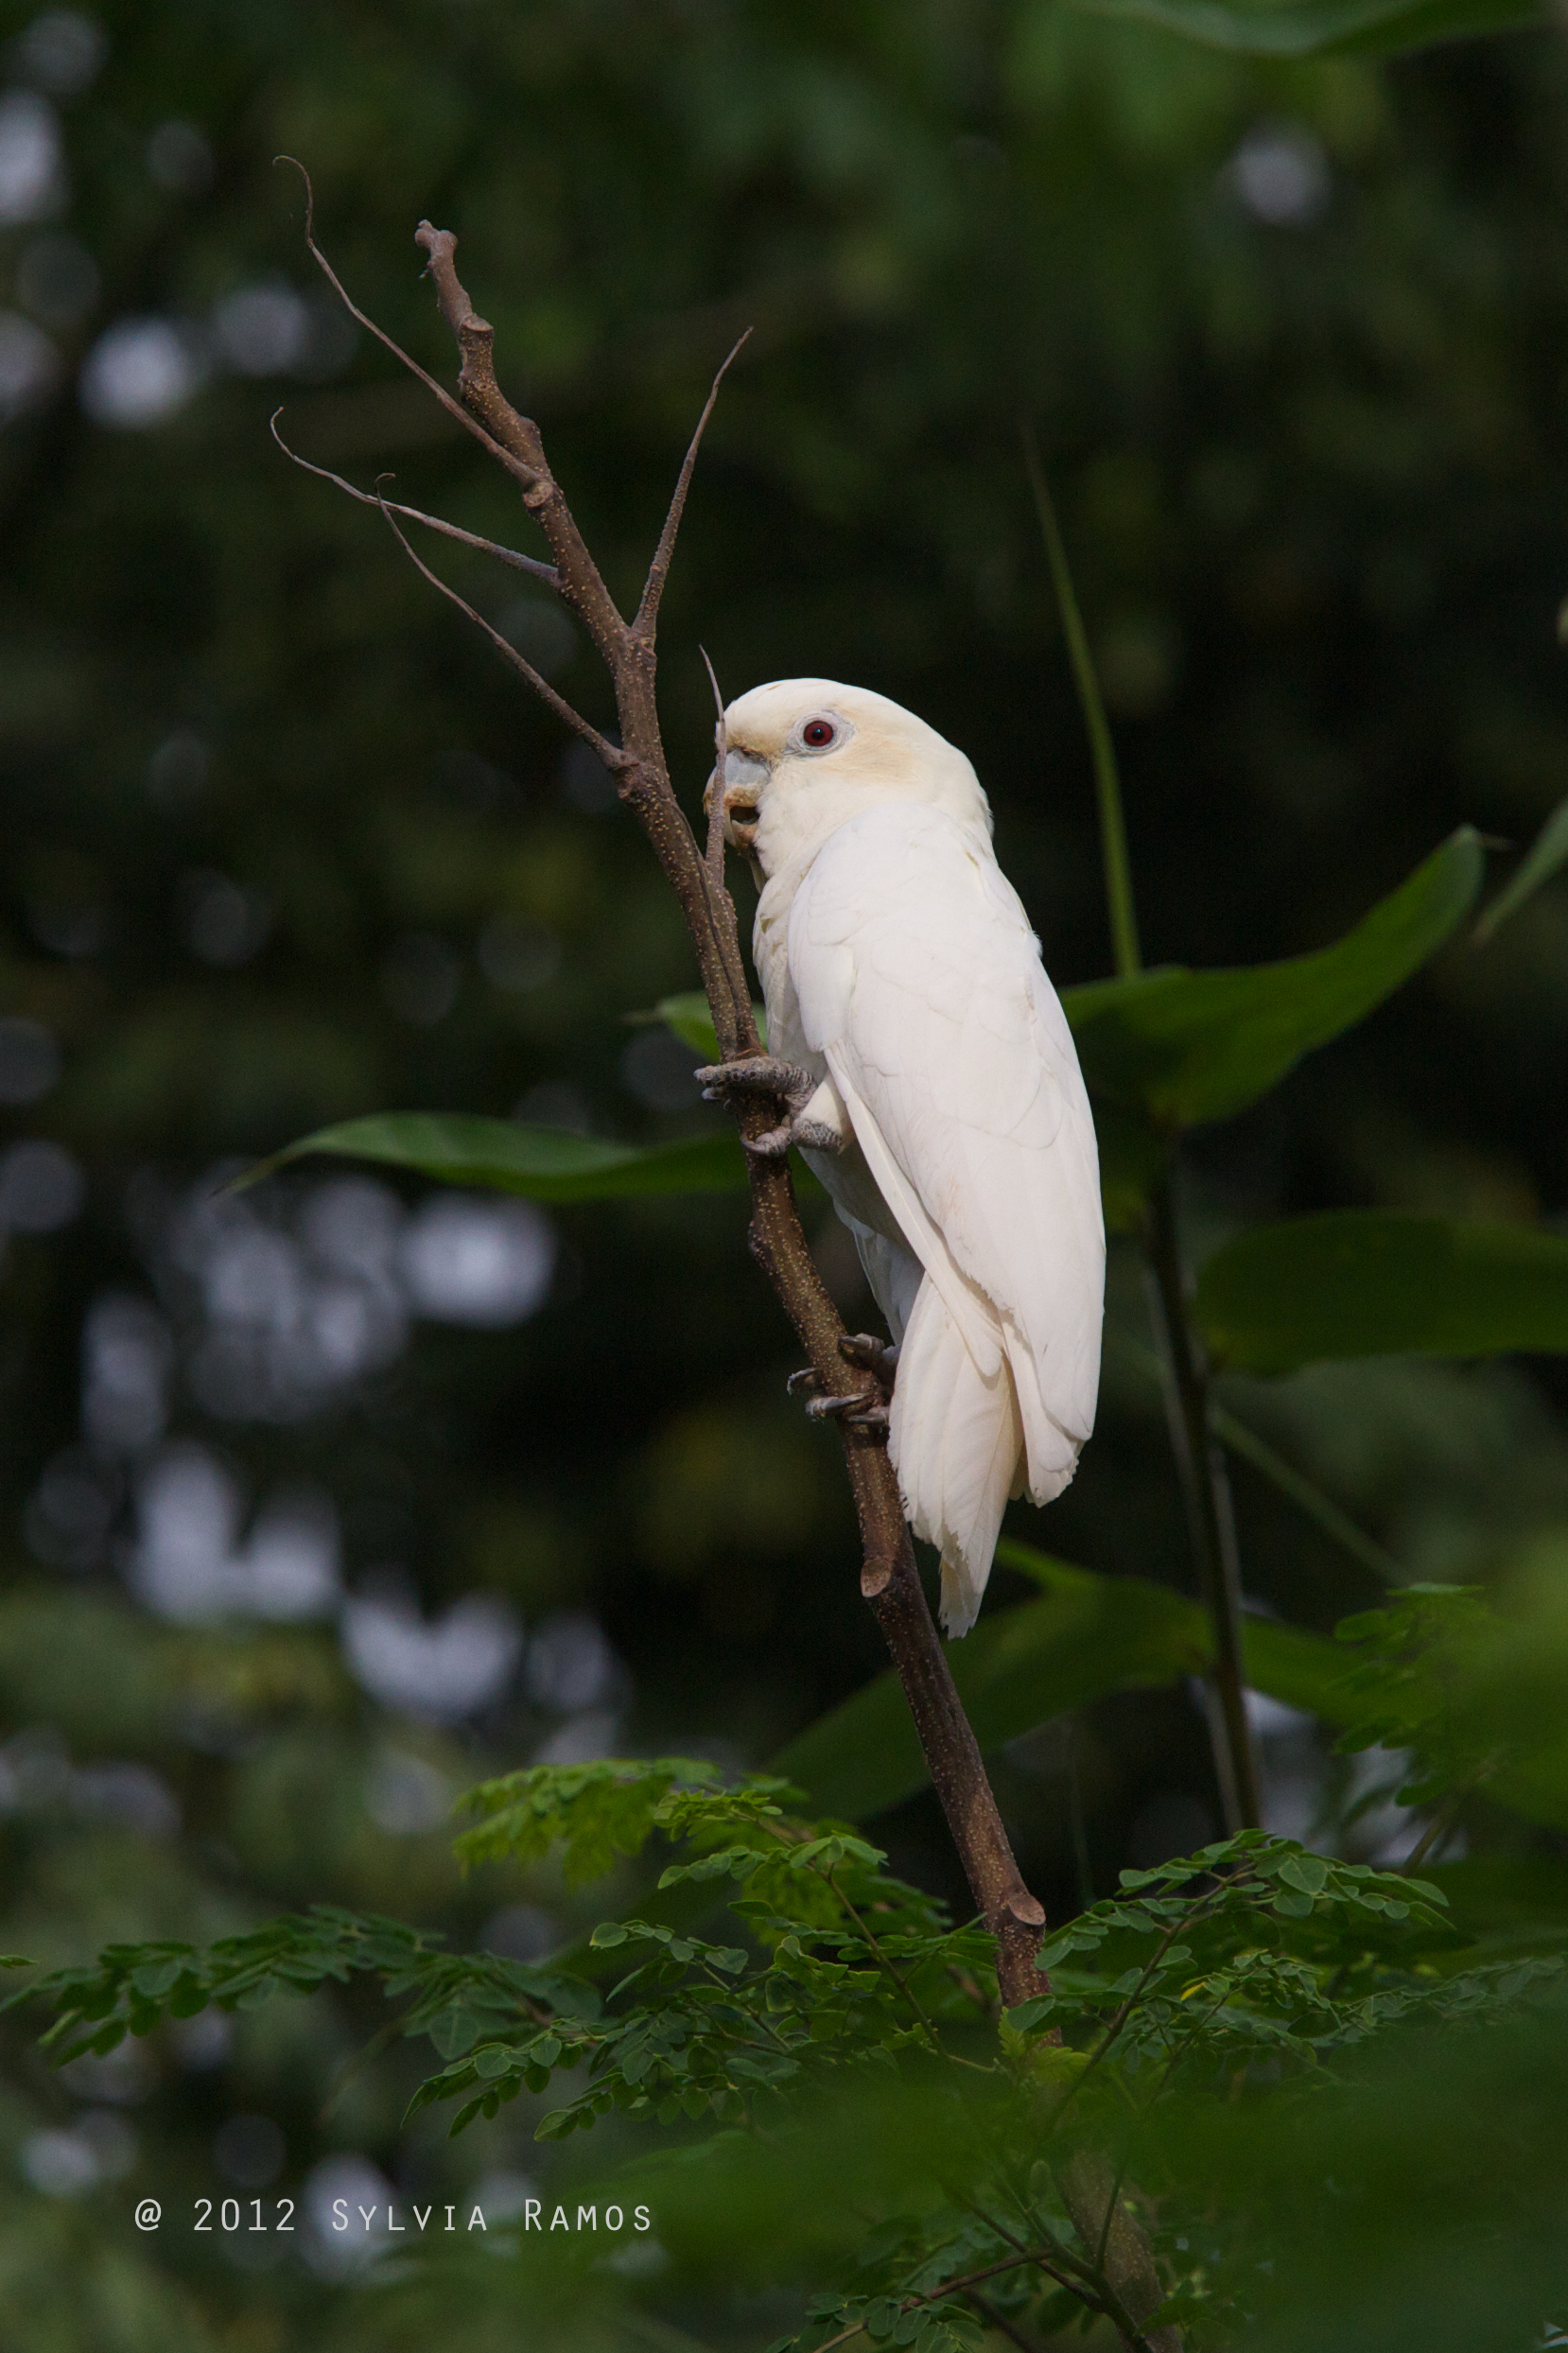 This is a female Philippine Cockatoo. Photo by Sylvia Ramos.